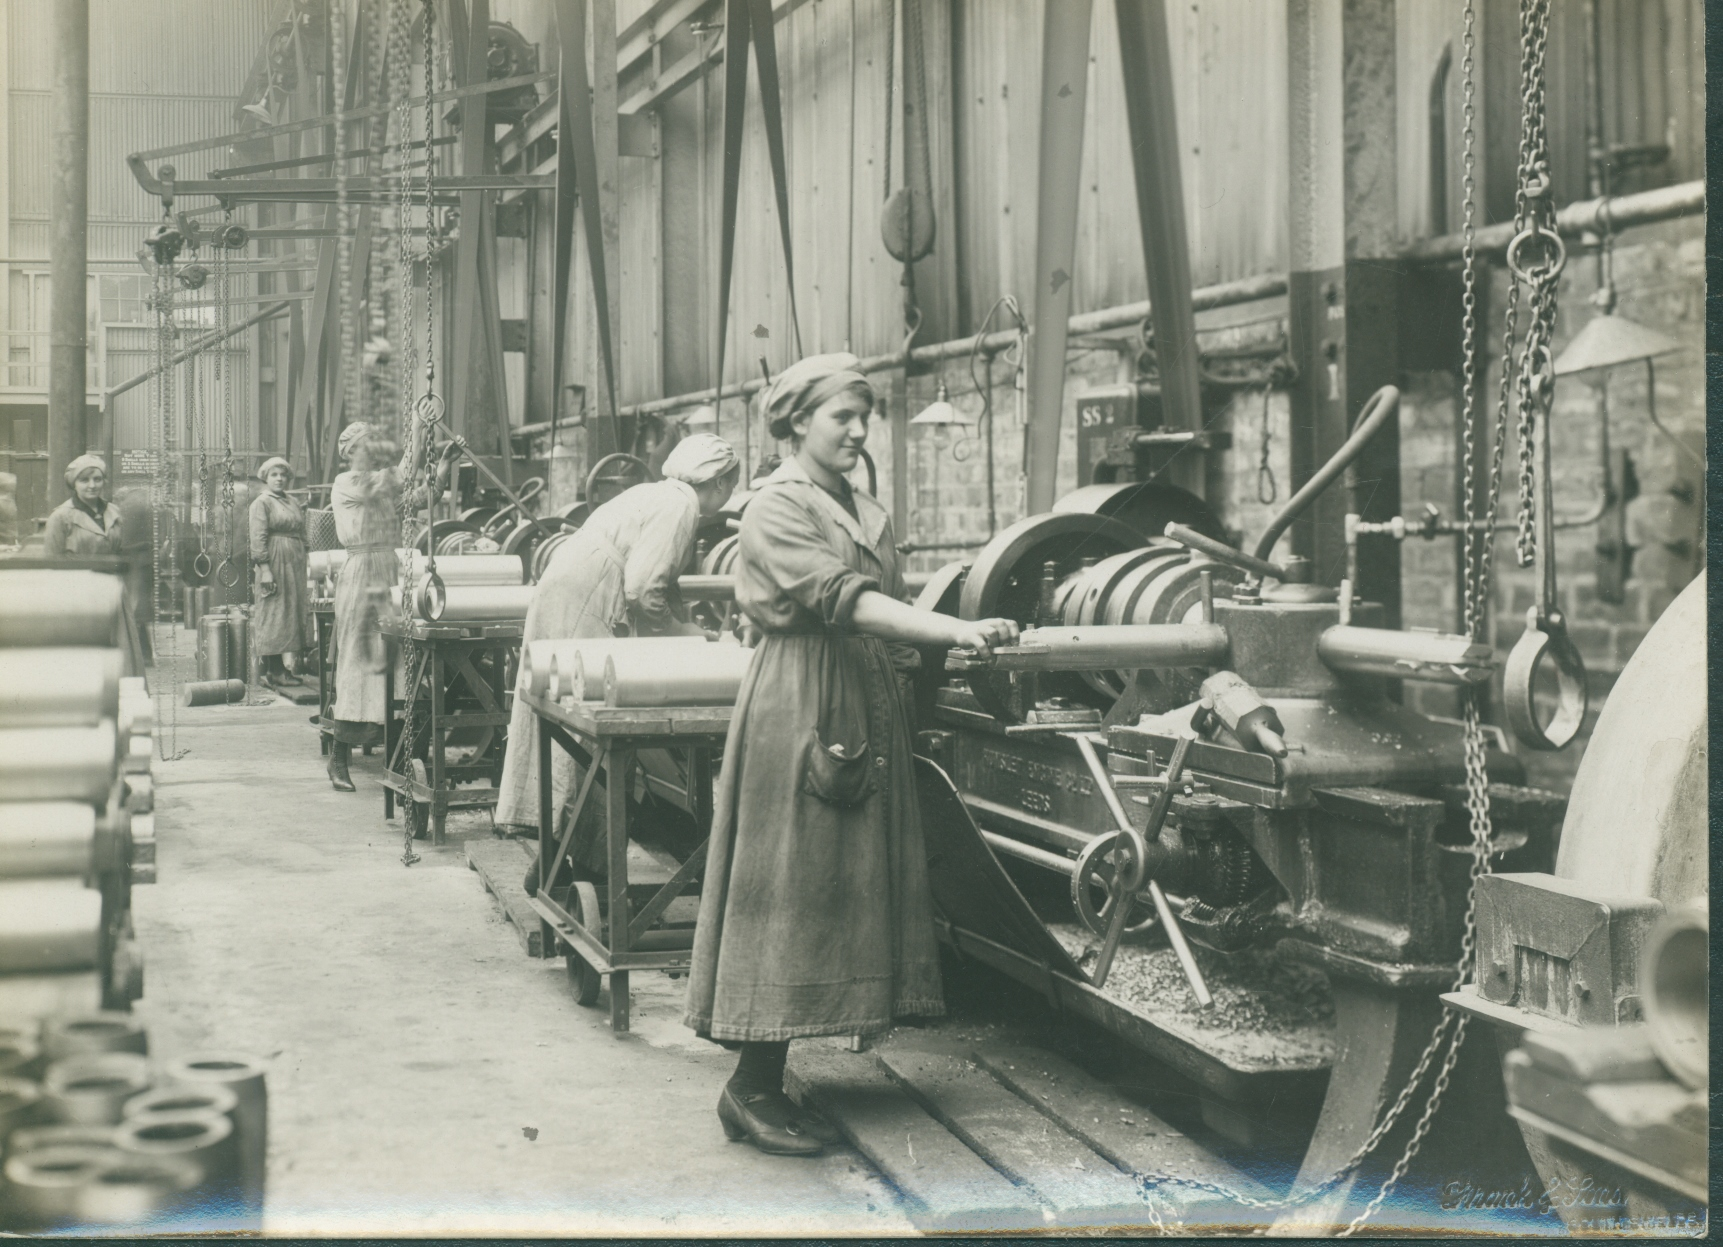 Wome operating capstan lathes